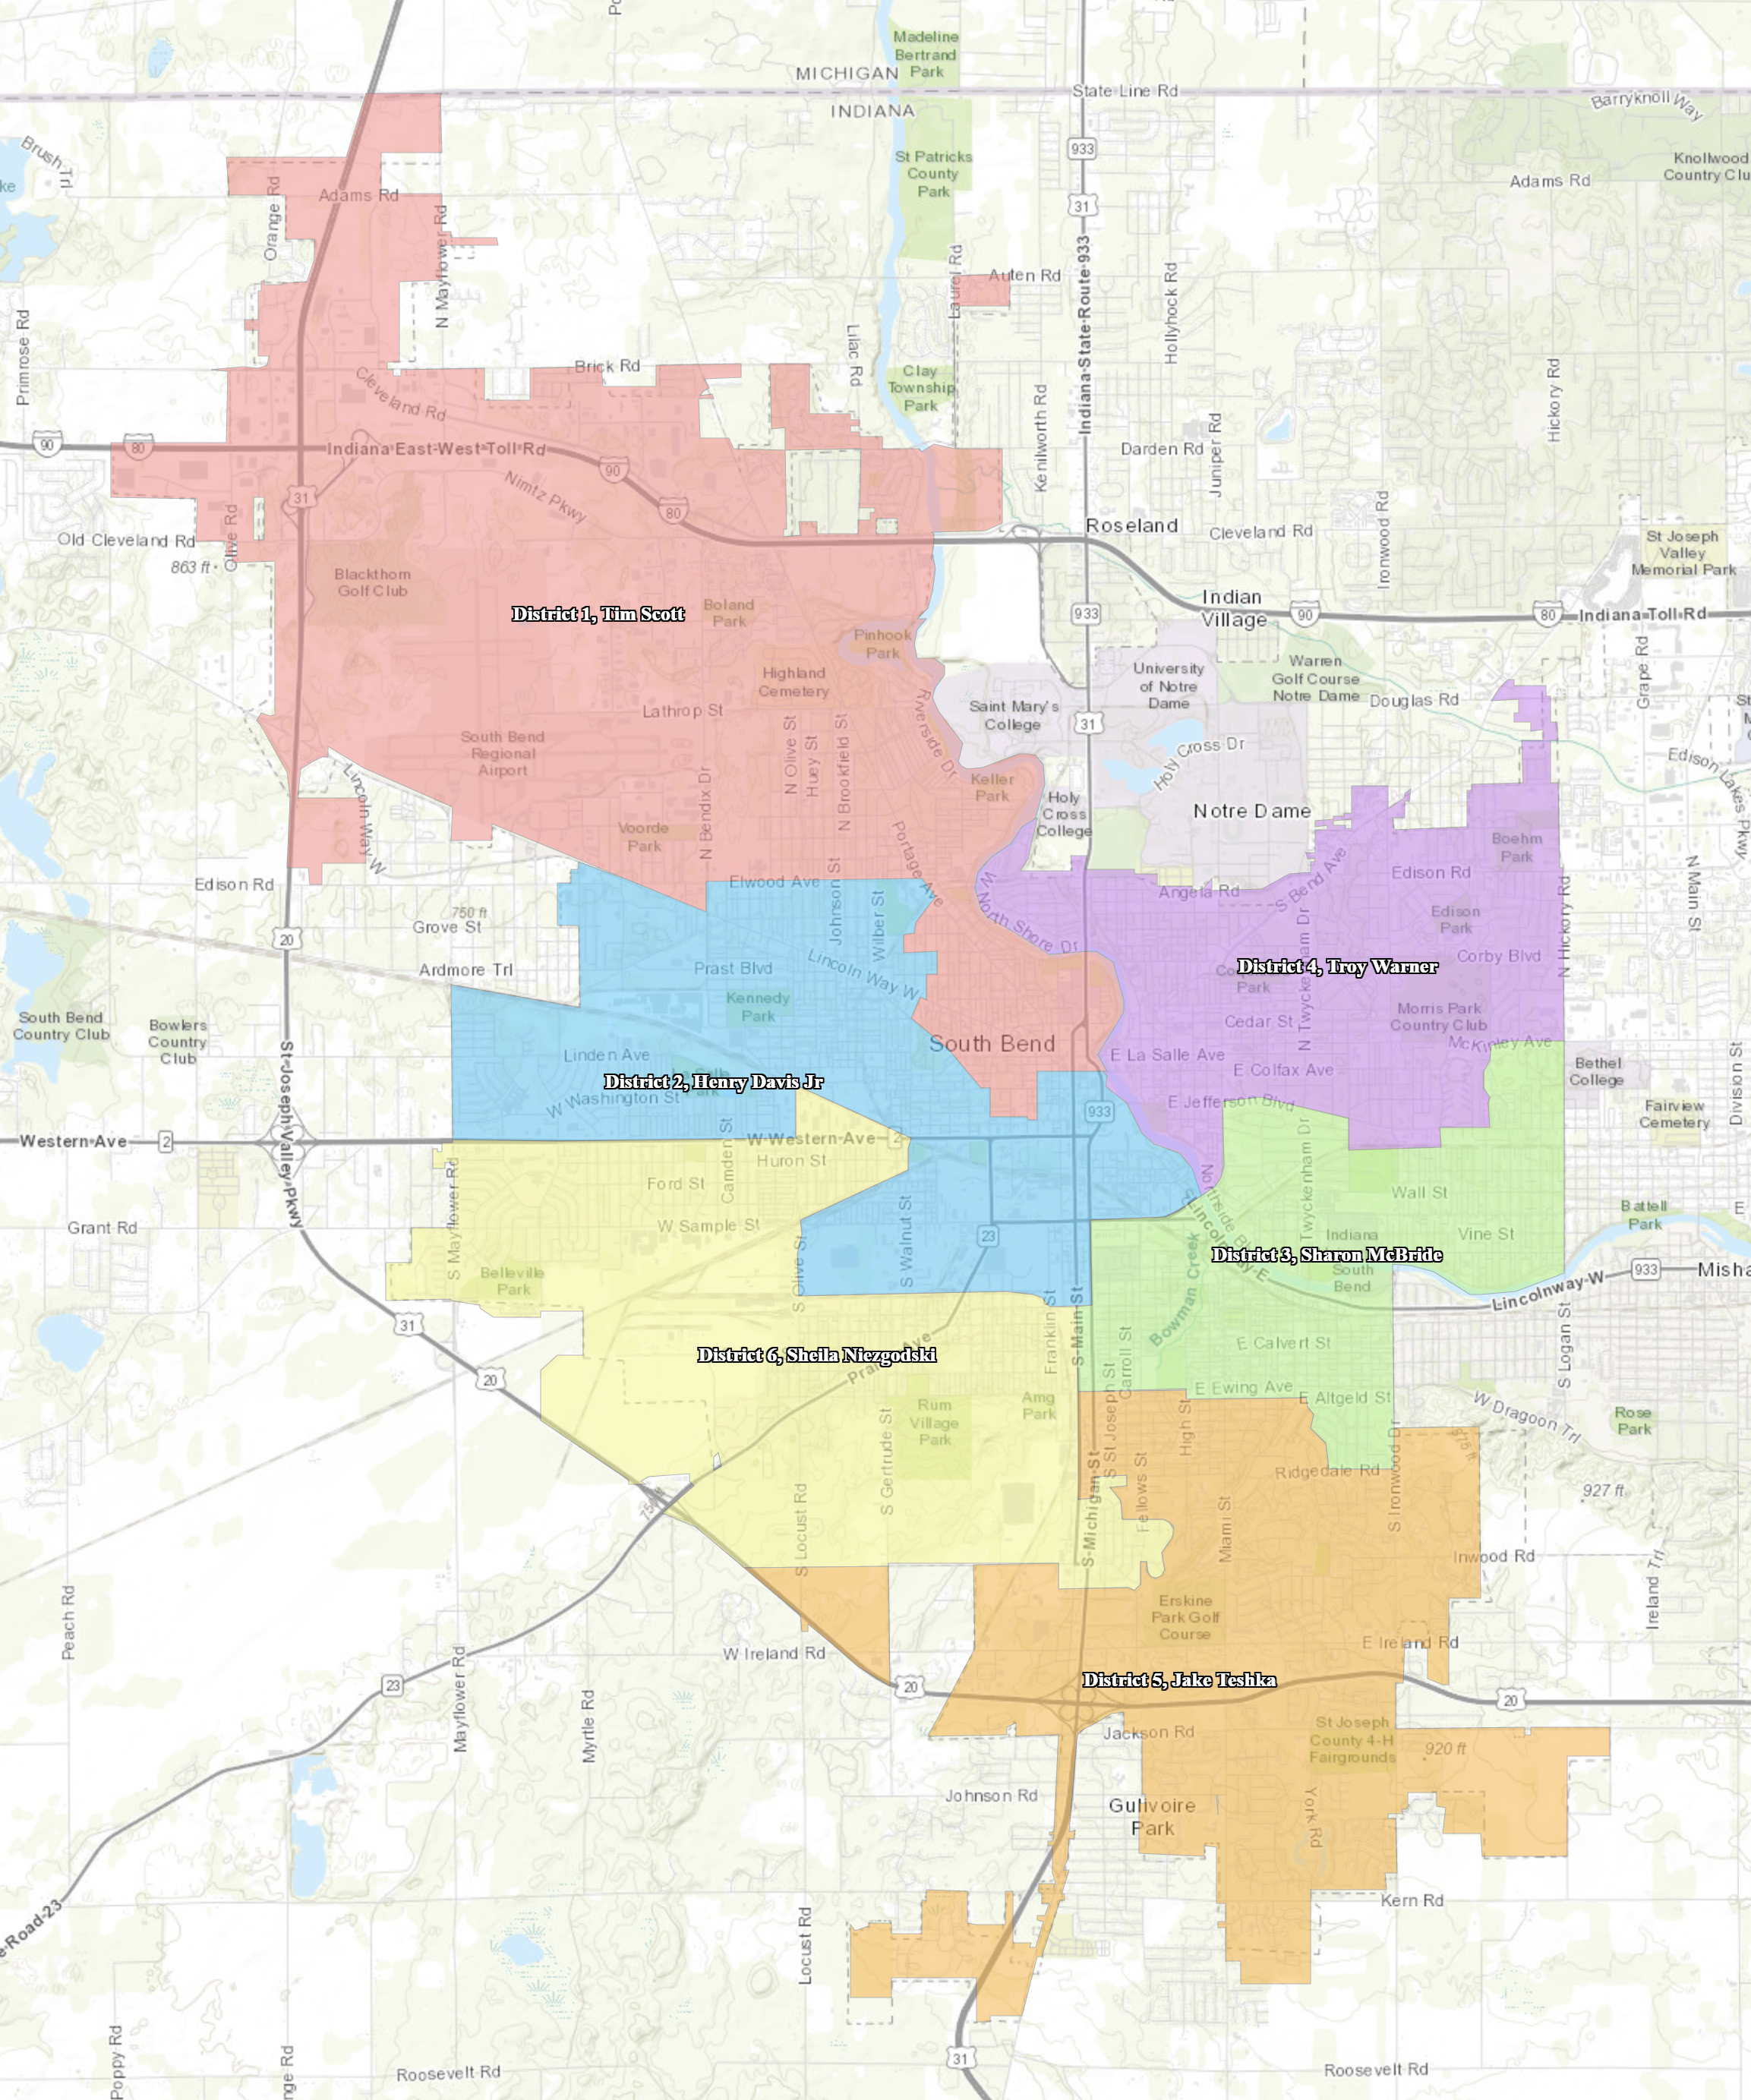 Council Districts for the City of South Bend